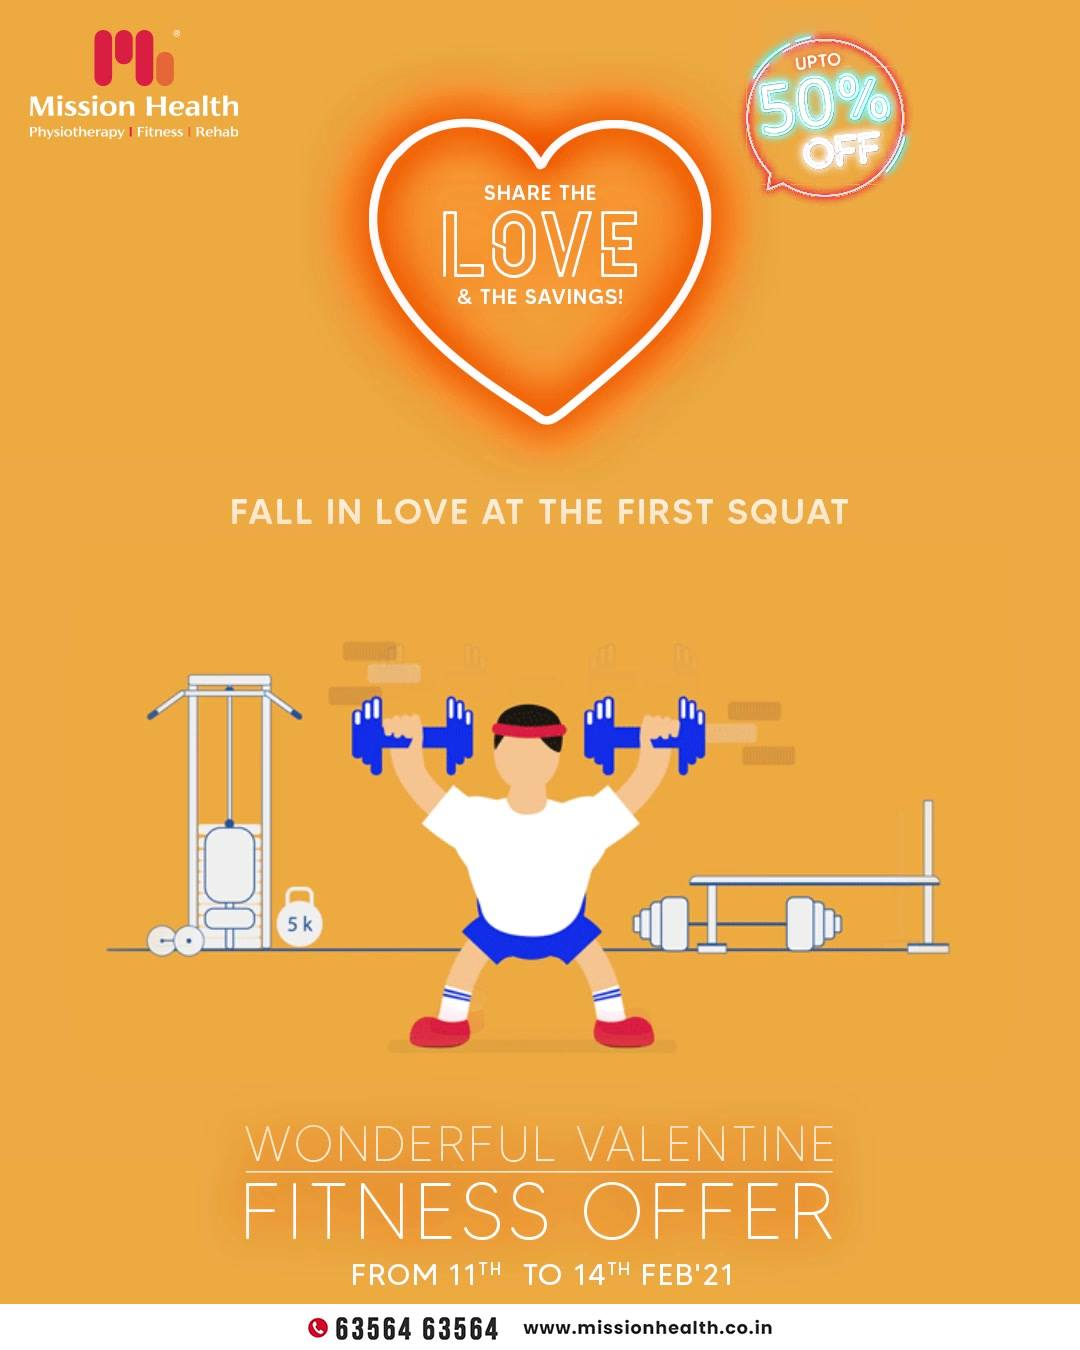 "Gone are the days of ""Love at first sight""; it's time to ""fall in love with the first squat"" because the benefits of doing squats are a gracious plenty.  Awaken the fitness enthusiast in you and walk miles ahead on the path of fitness towards your health goals with our Wonderful Valentine Fitness Offer.  Mission Health Helpline Number: +916356463564 www.missionhealth.co.in  #ValentineFitnessOffer #FitnessisFirstLove #MissionHealth #Fitness #PersonalTraining #FatToFit #Transform #GroupFitness #Slimming #MovementIsLife"